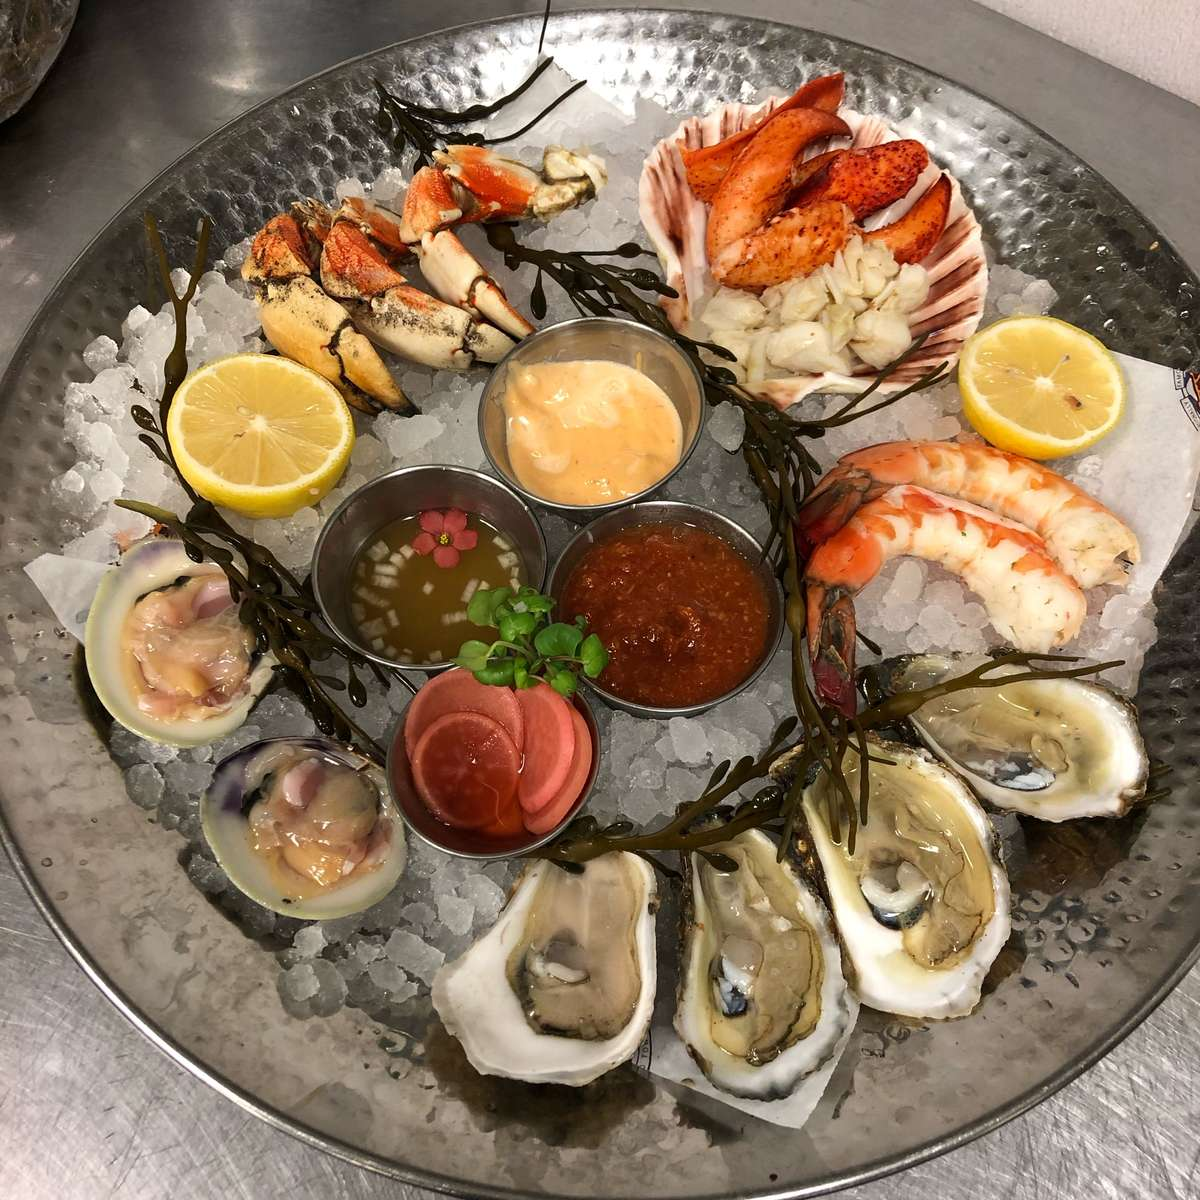 Chilled Seafood Platter for 4